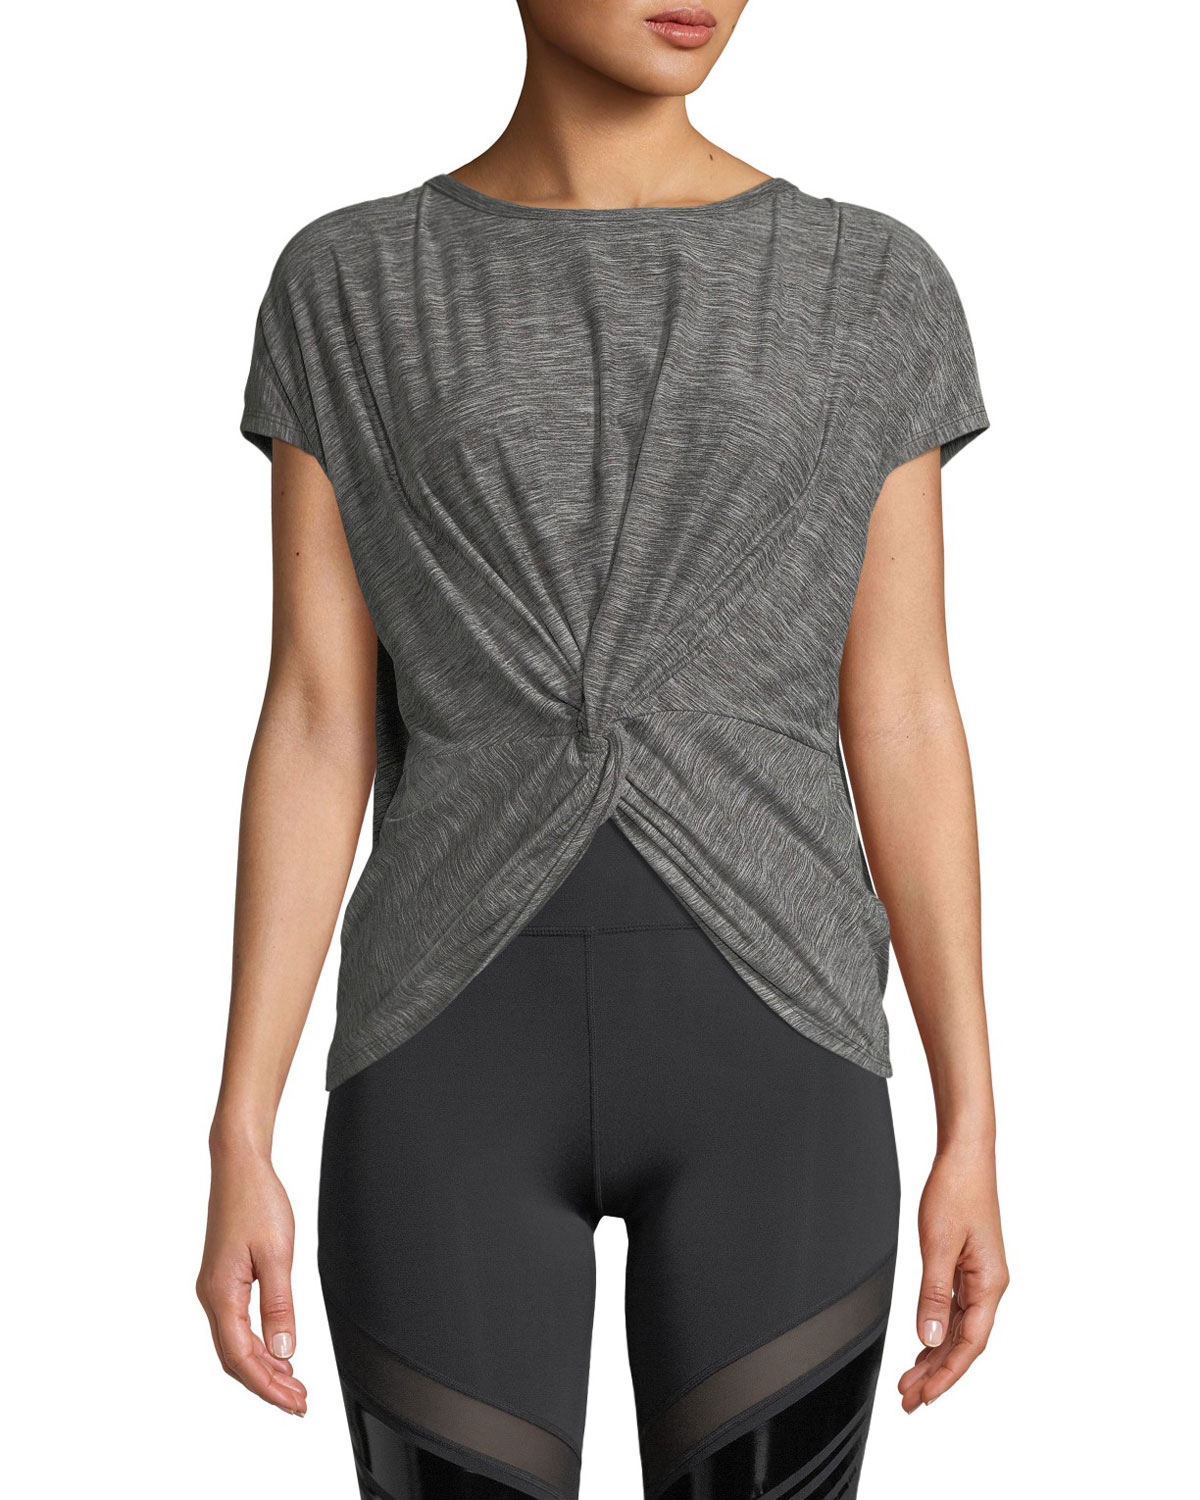 NYLORA Emerson Activewear Twisted T-Shirt Top in Heather Charcoal